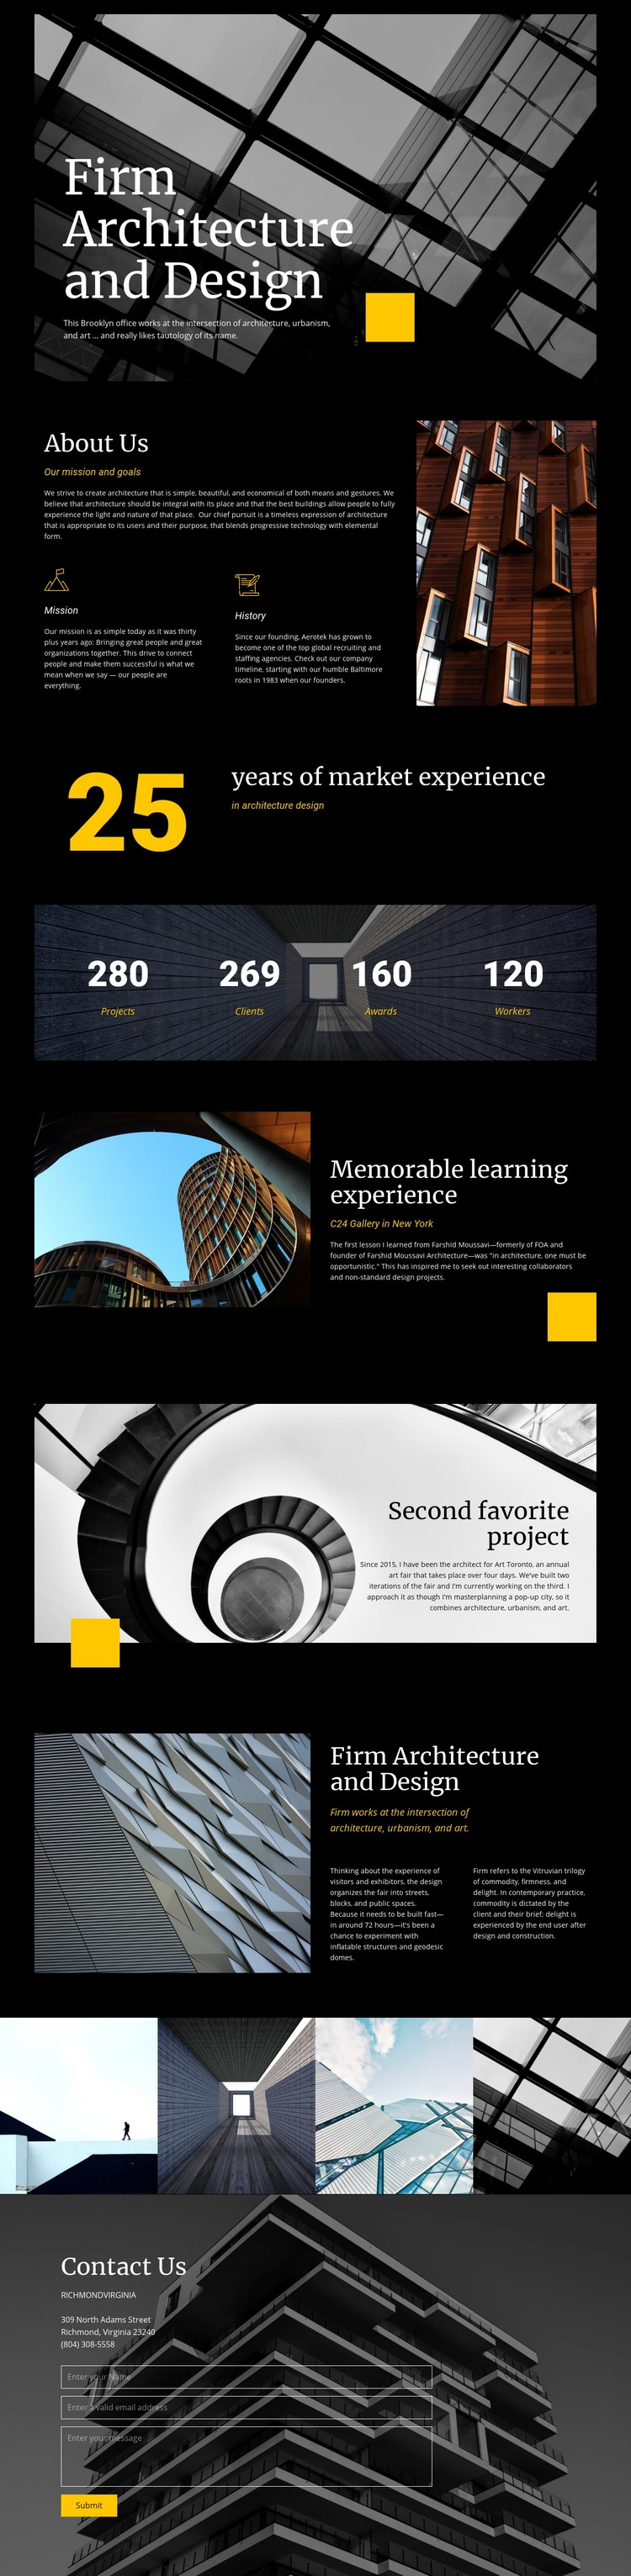 Firm architecture and Design Html Code Example